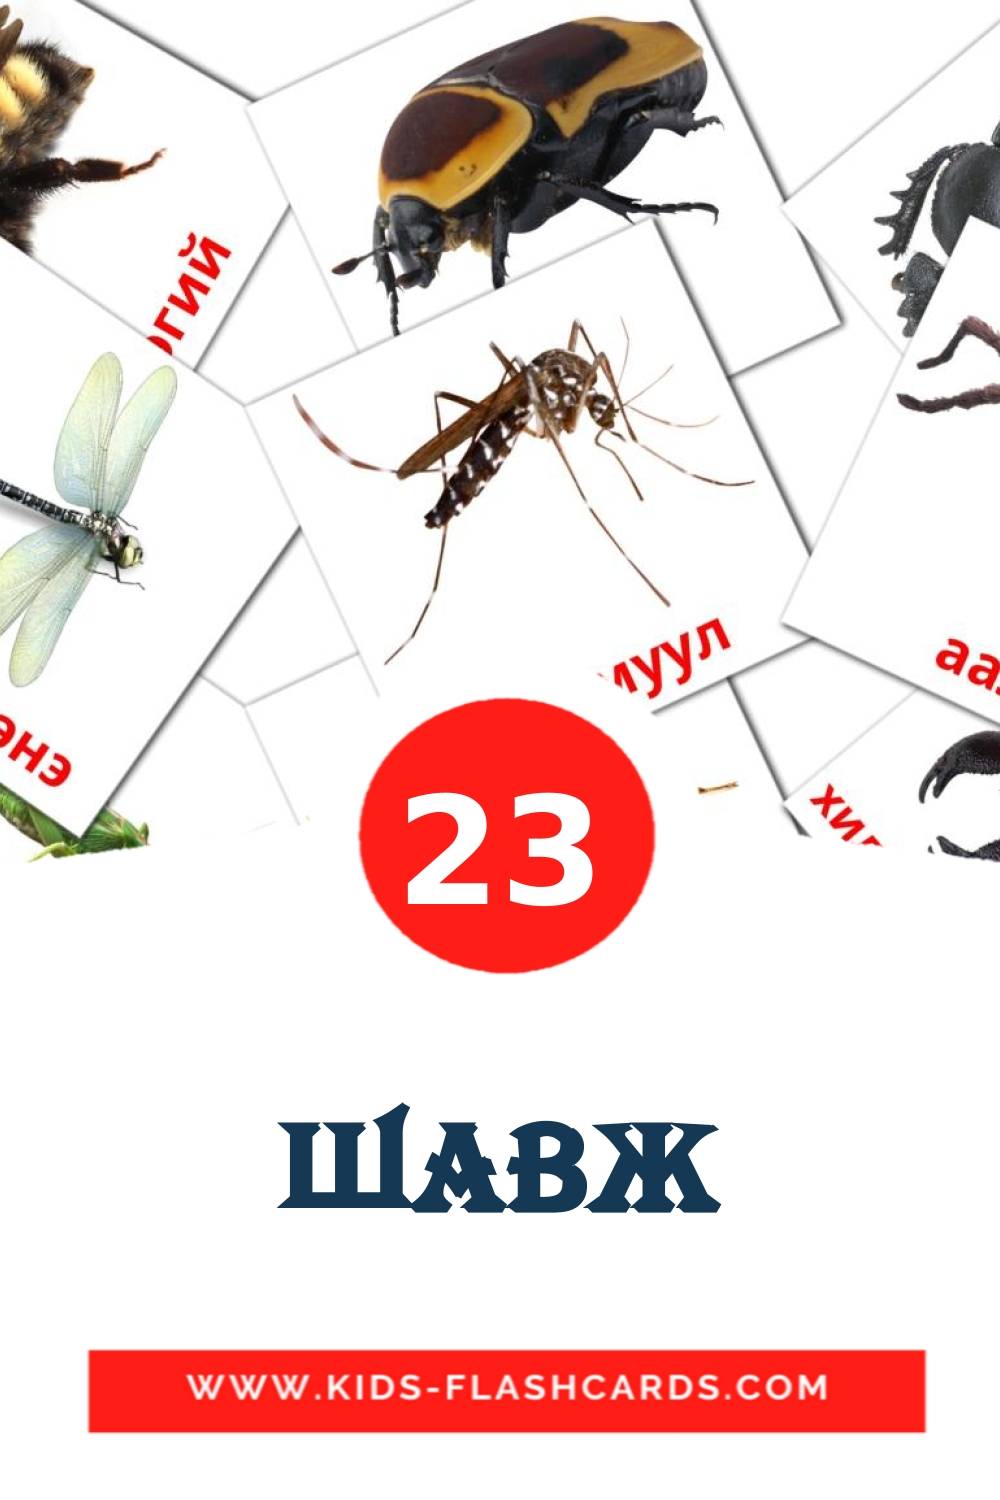 Шавж - free cards in mongolian